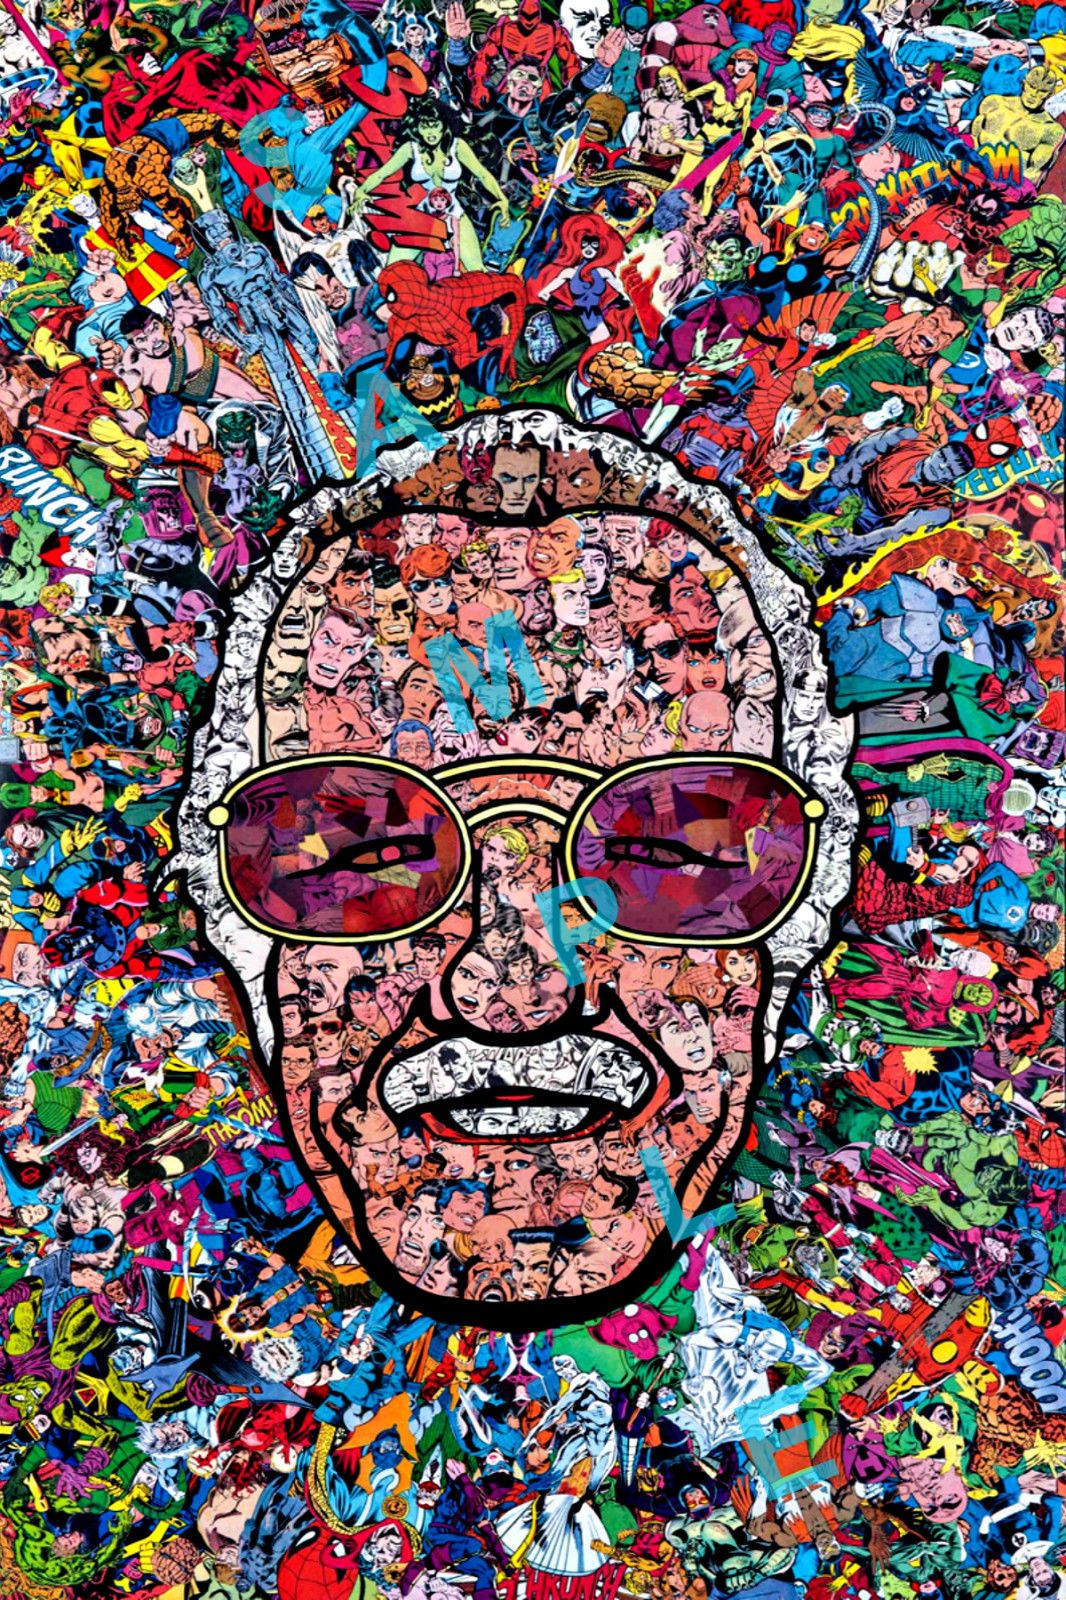 Details about STAN LEE 12x18 HEROES FACES ART POSTER